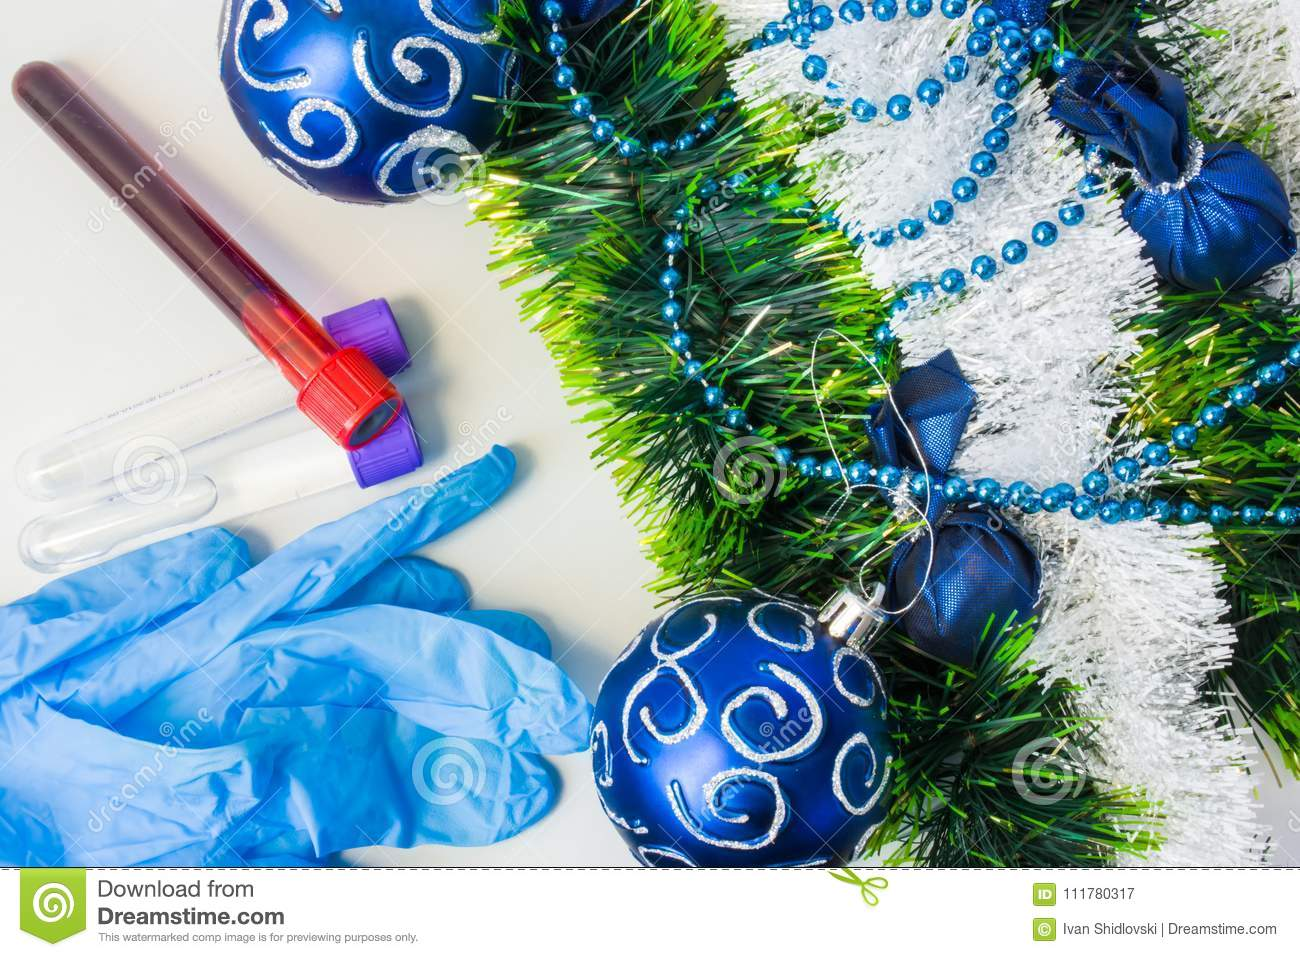 New Year and Christmas in medical, clinical or scientific laboratory. Protective gloves and laboratory test tubes with blood sampl